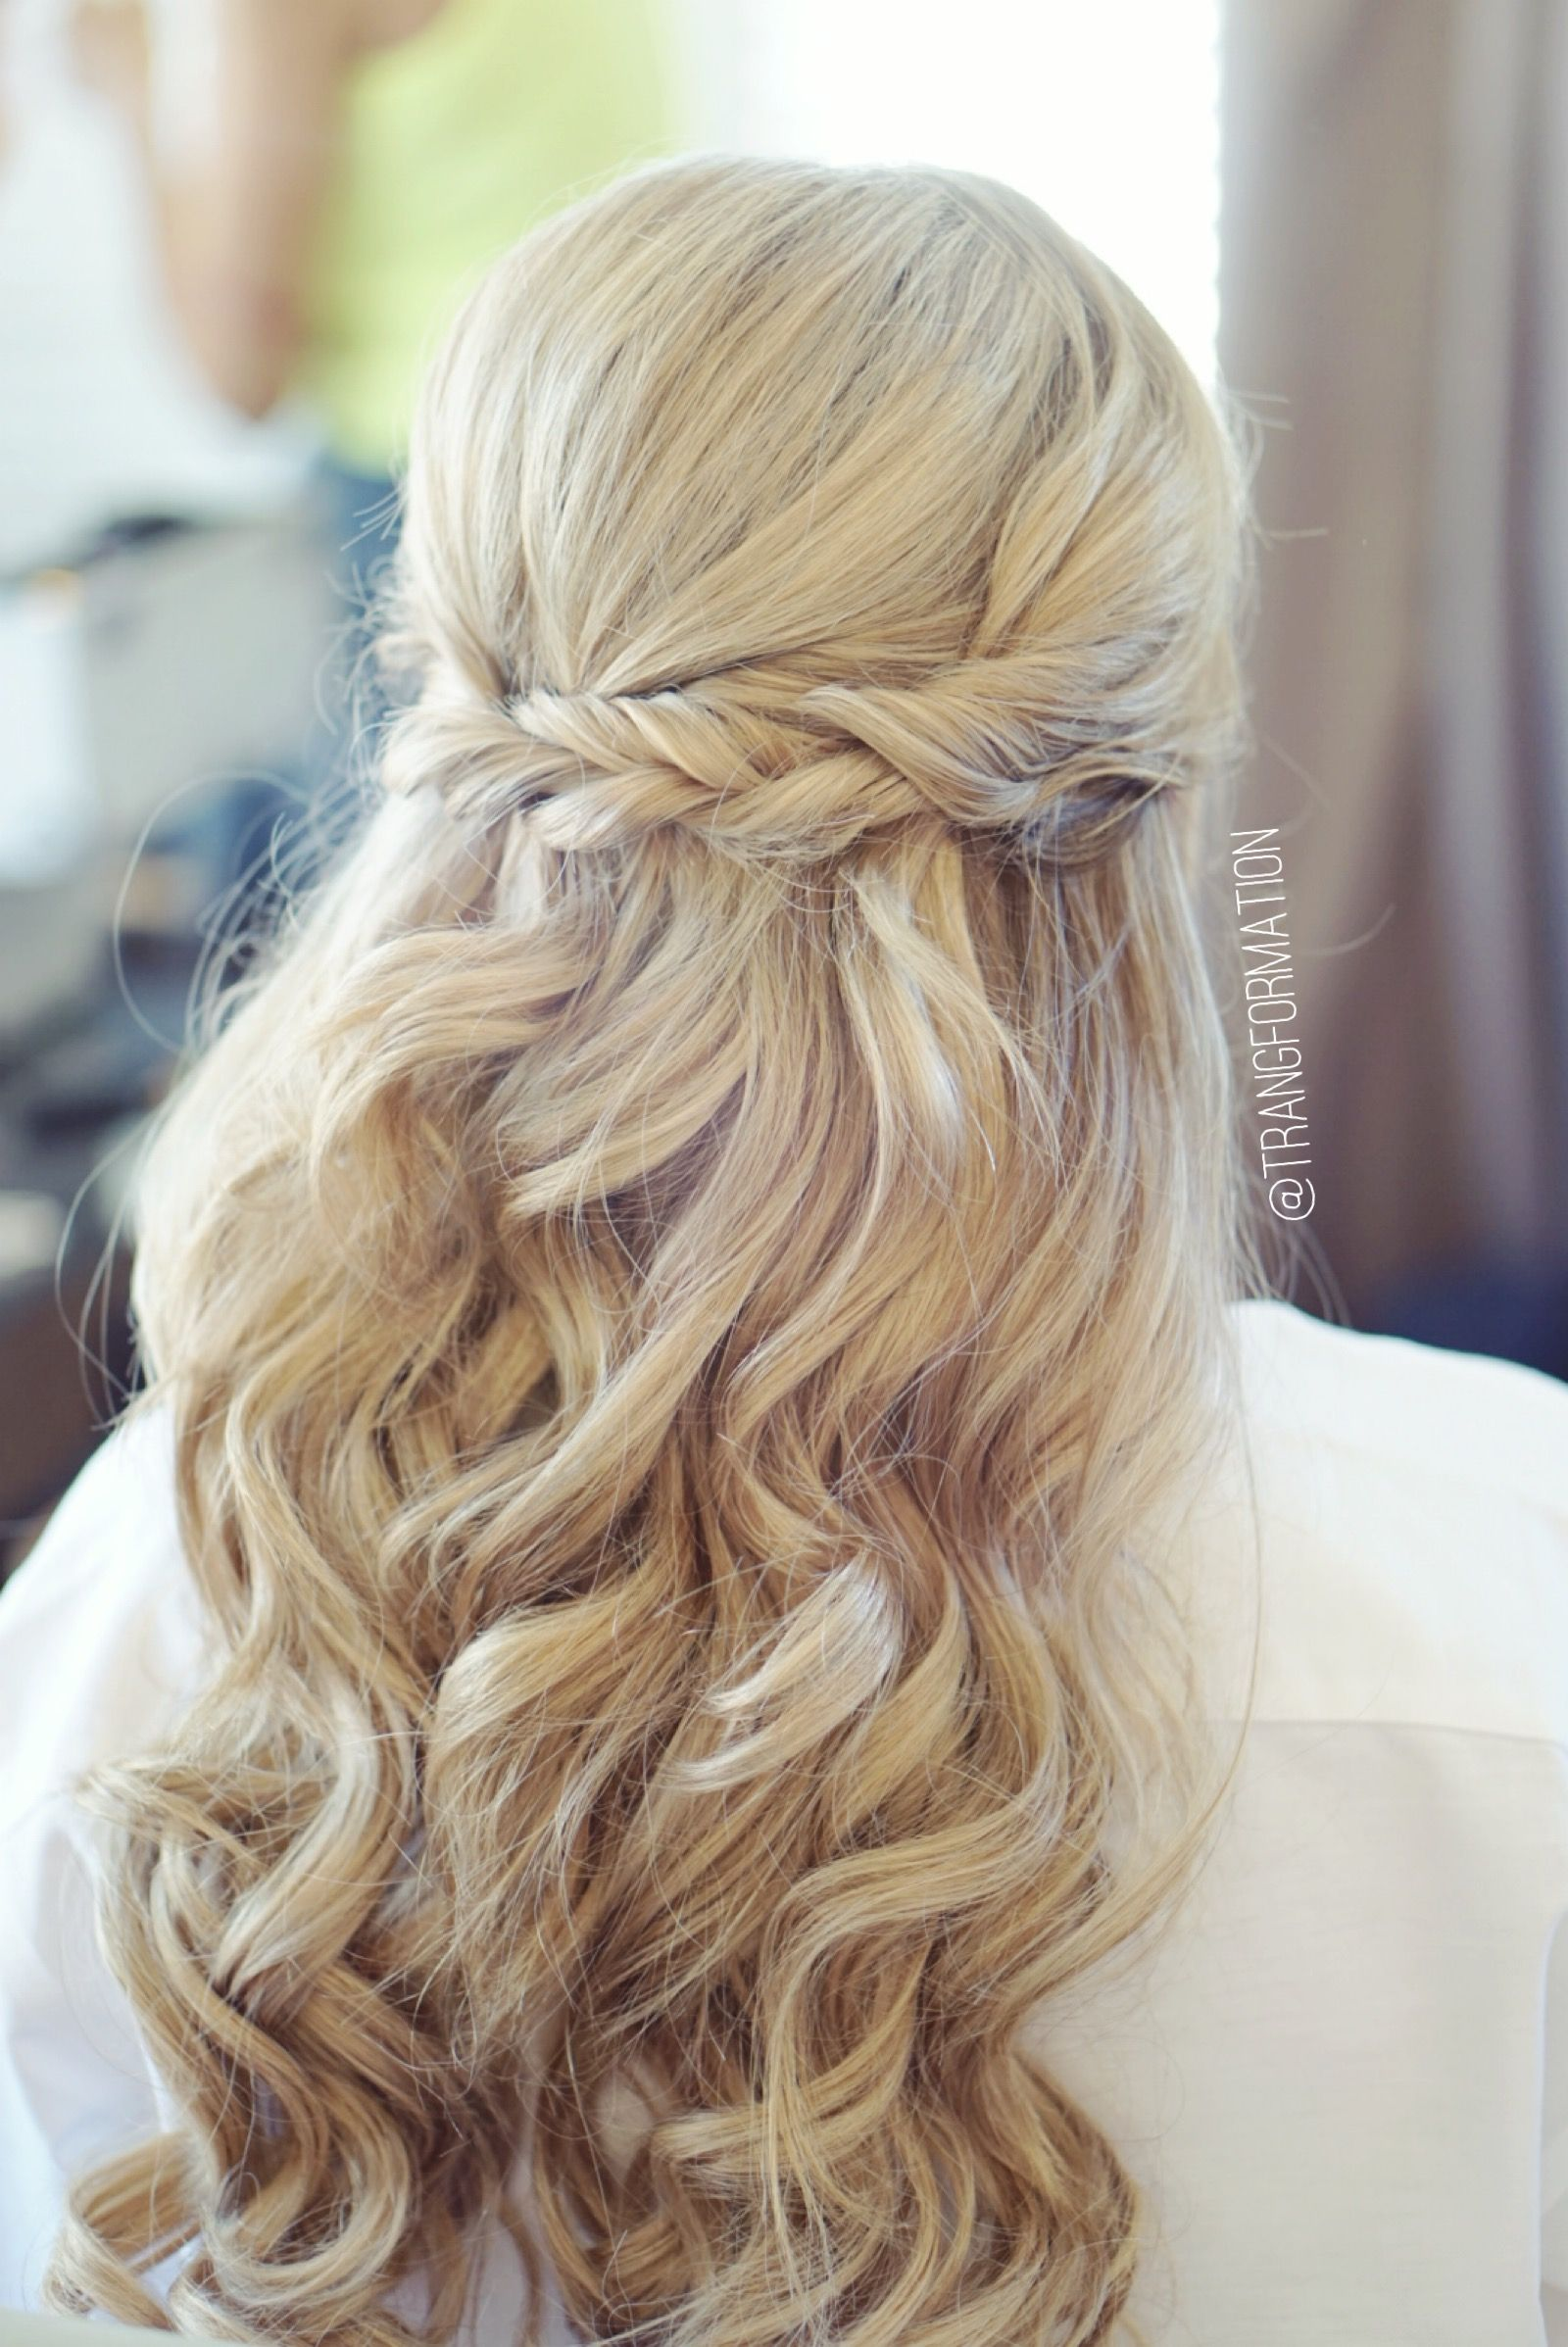 Half Up Half Down Bridal Hair Wedding Hair Bride Wedding Hairstyles Prom Hair Down Hair Styles Long Hair Styles